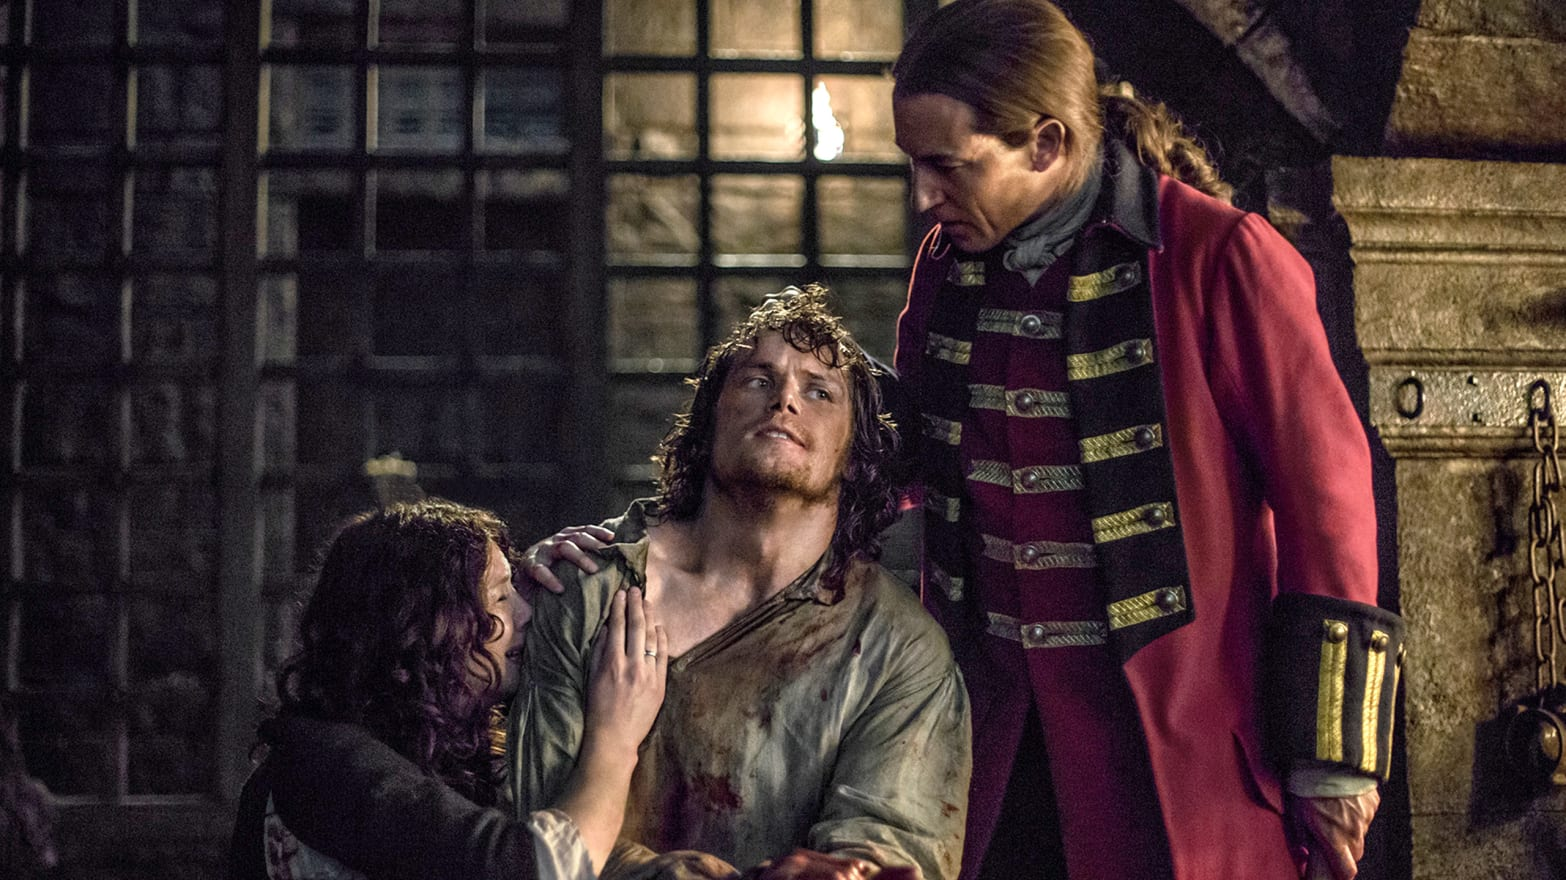 TV's Rape Obsession: What 'Outlander' Got Right and 'Game of Thrones